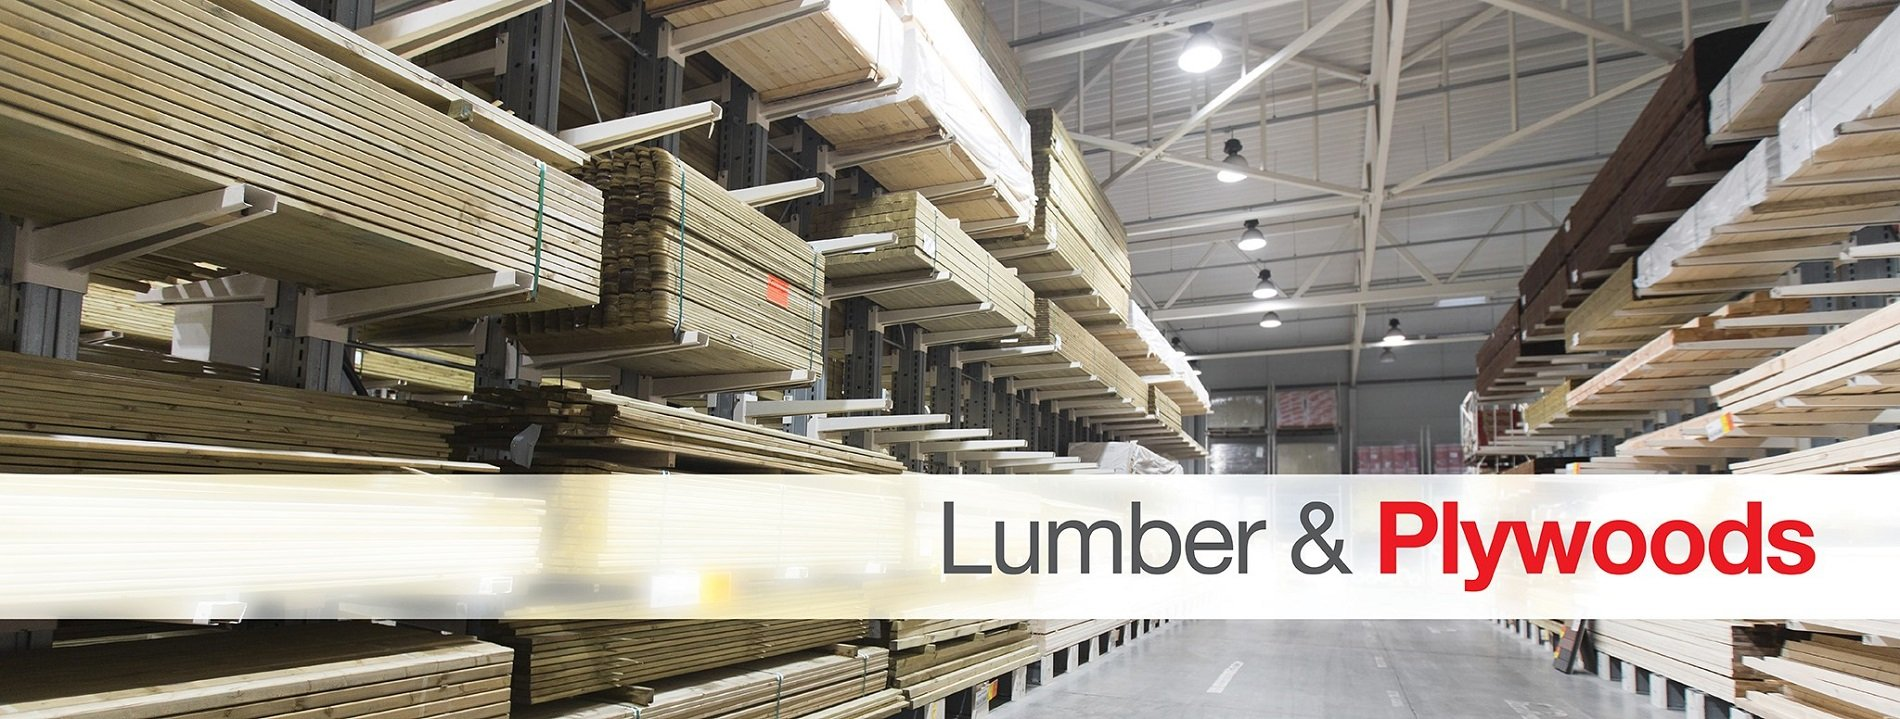 Imeca Lumber & Hardware - A One Stop Home Improvement